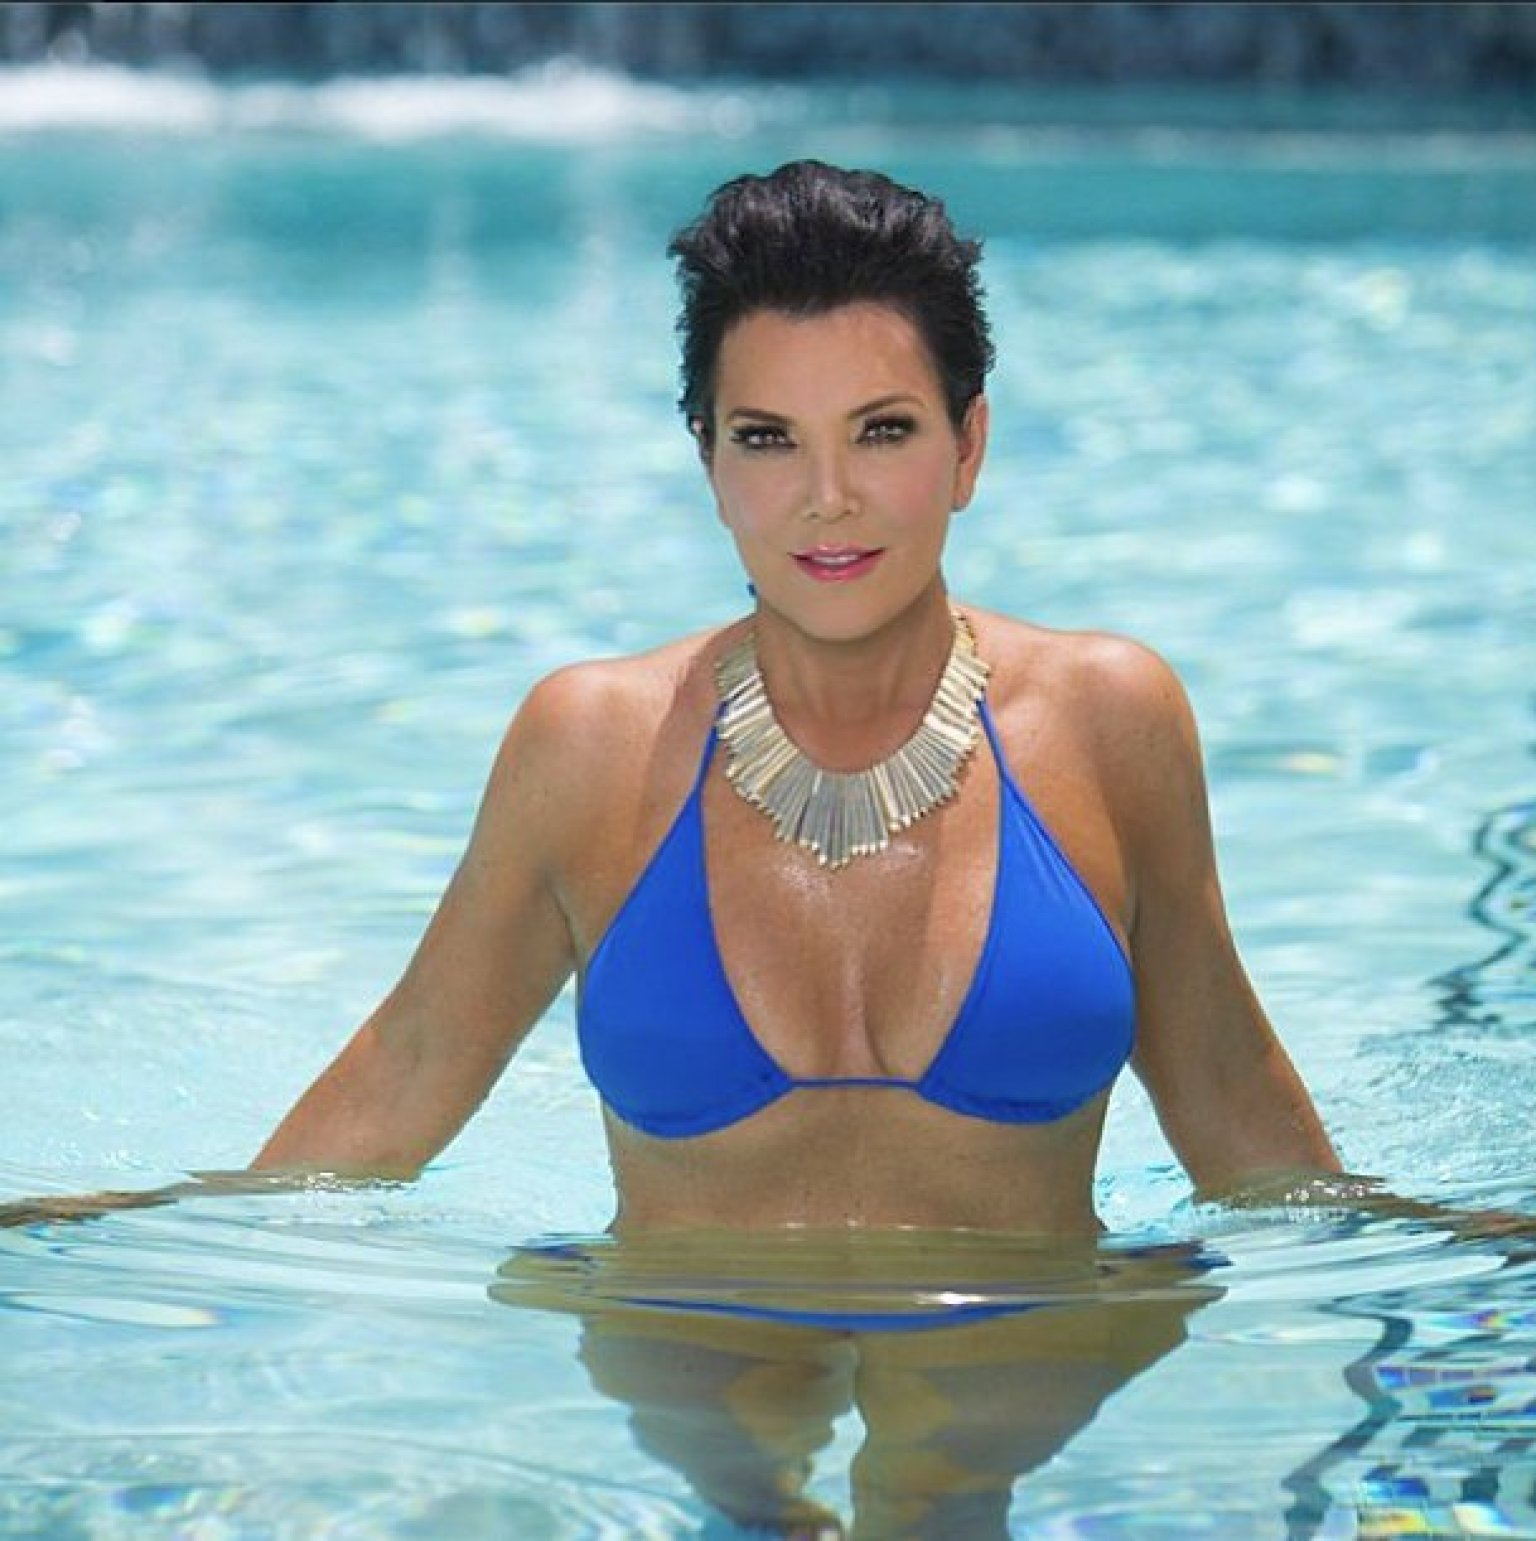 Kendall Jenner, Kris Jenner Reveal Their Bikini Bodies On Instagram